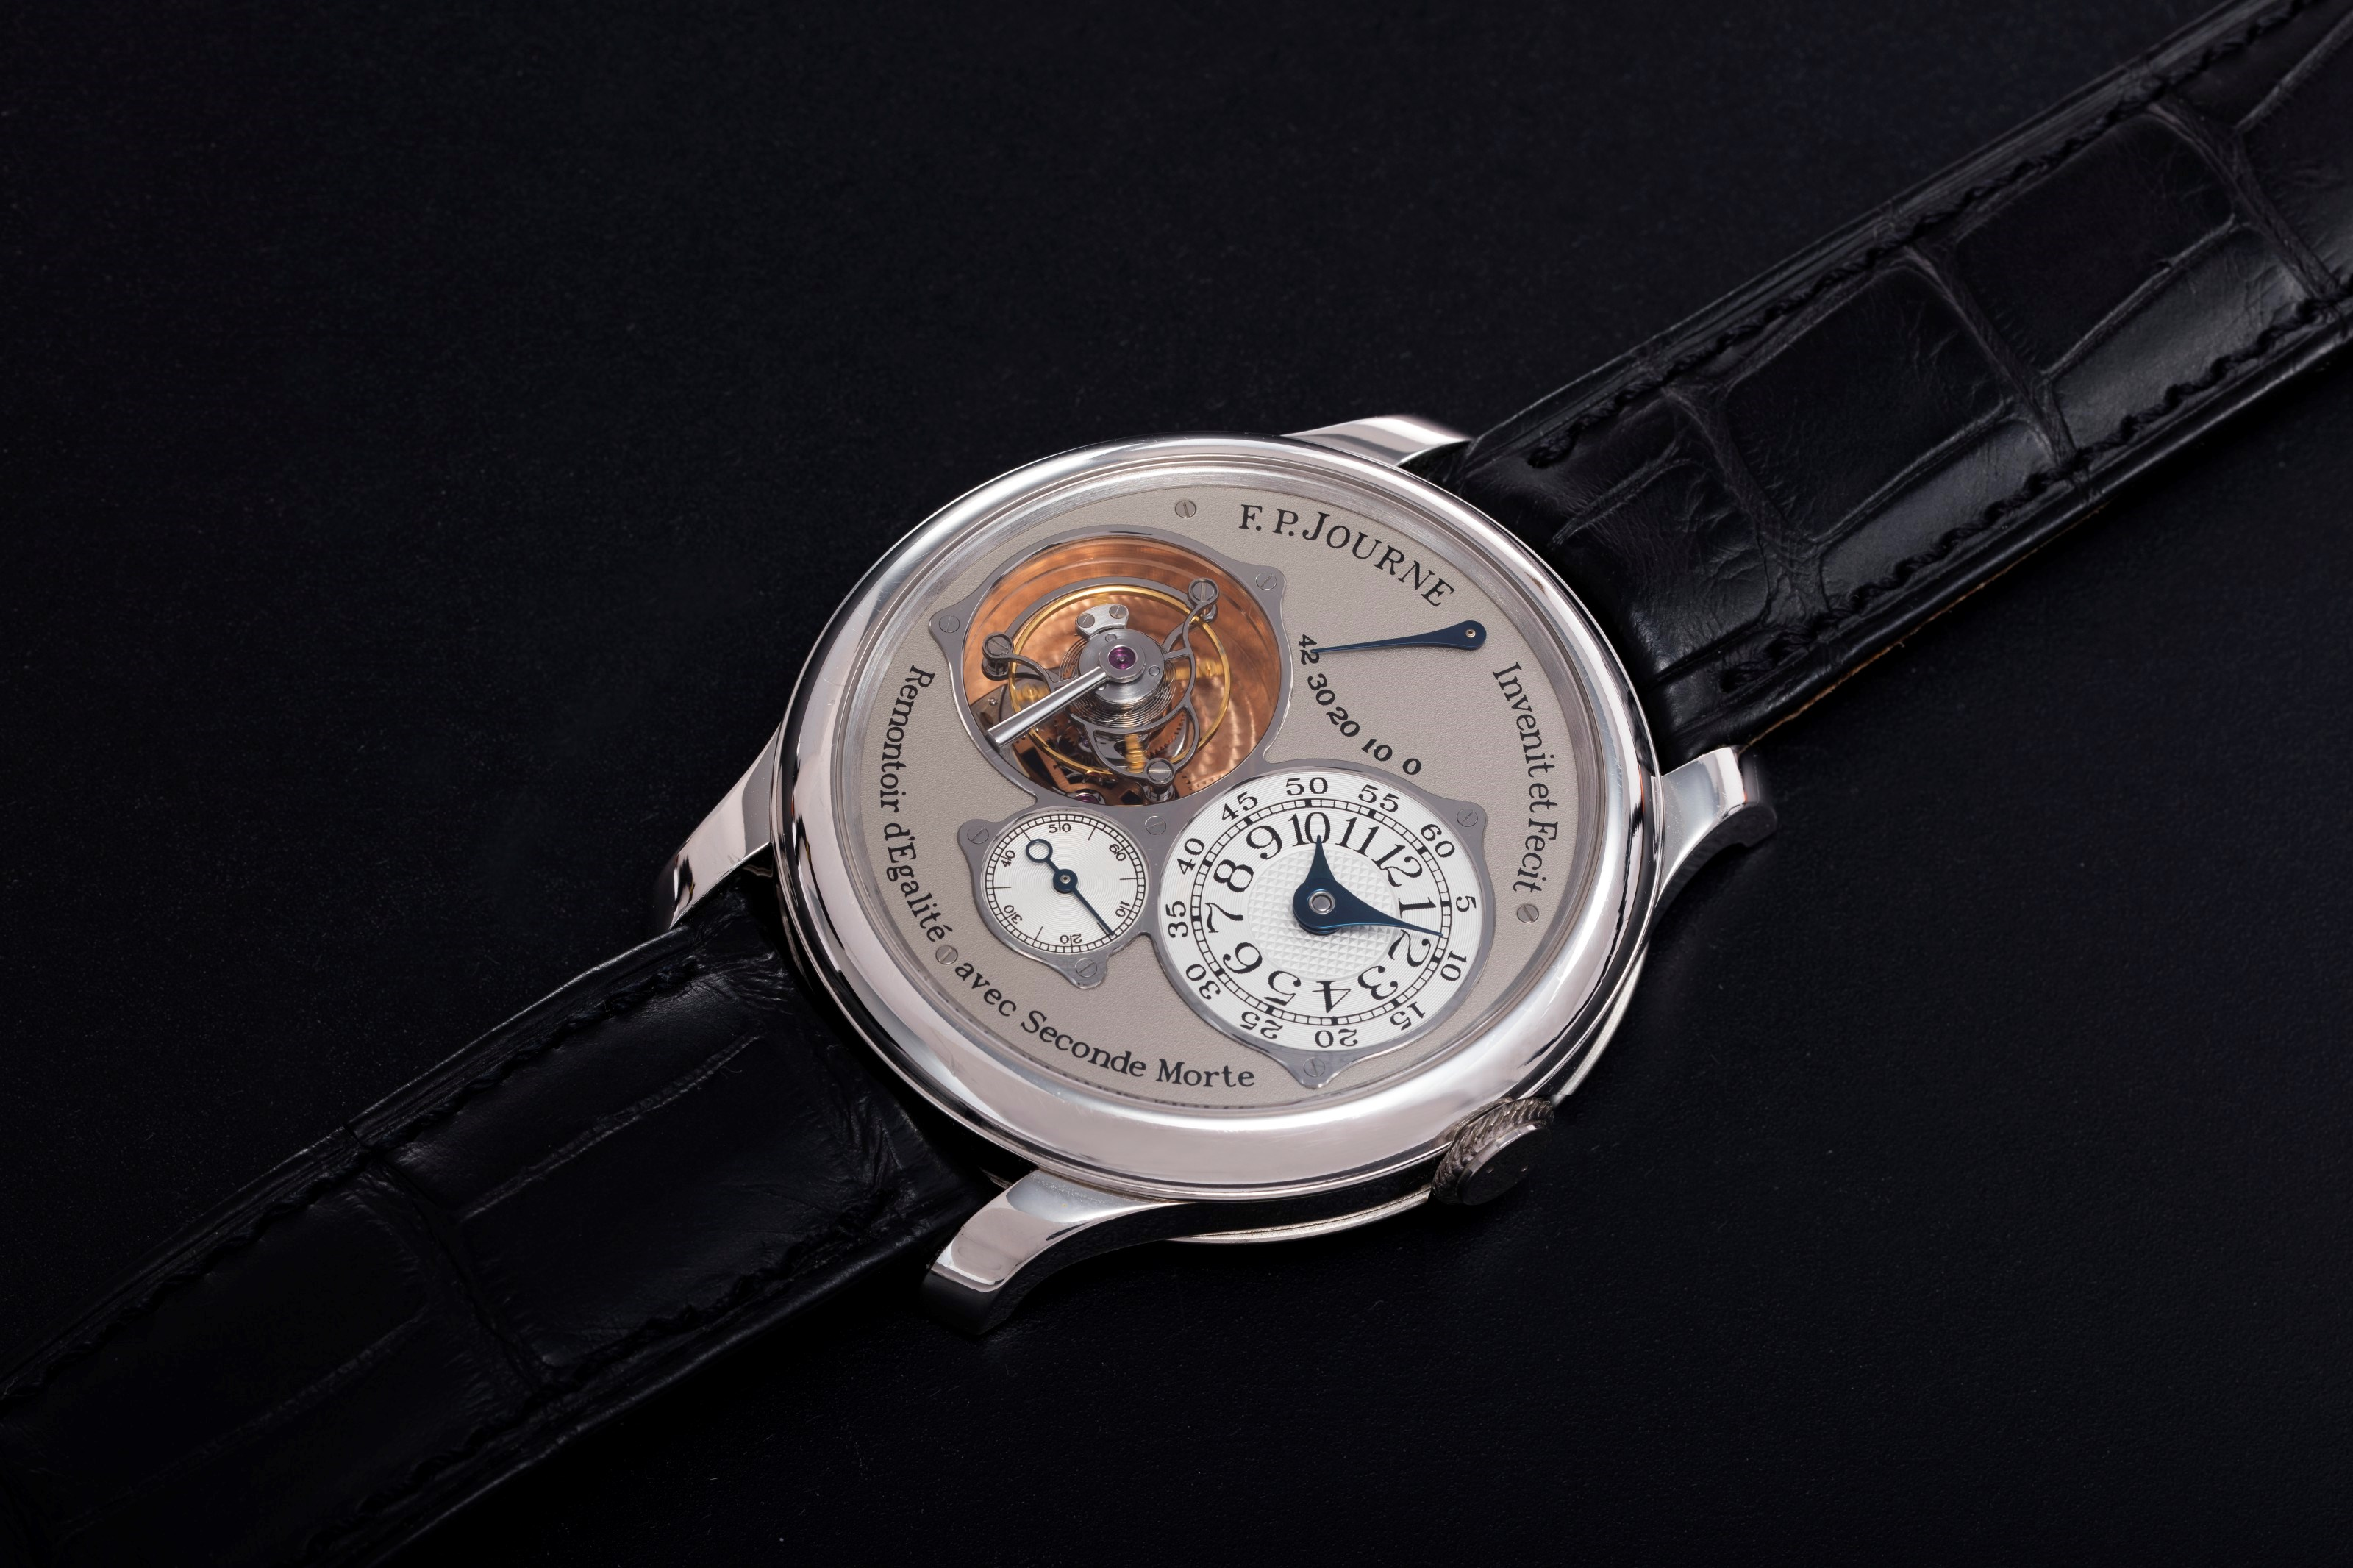 F. P. Journe. A platinum tourbillon souverain with constant force device and dead beat seconds.Diameter 40 mm, comes with F. P. Journe Certificate of Authenticity confirming the sale of this watch in 2004 in Bahrain. Sold for $150,000 on 8 April 2021, Online